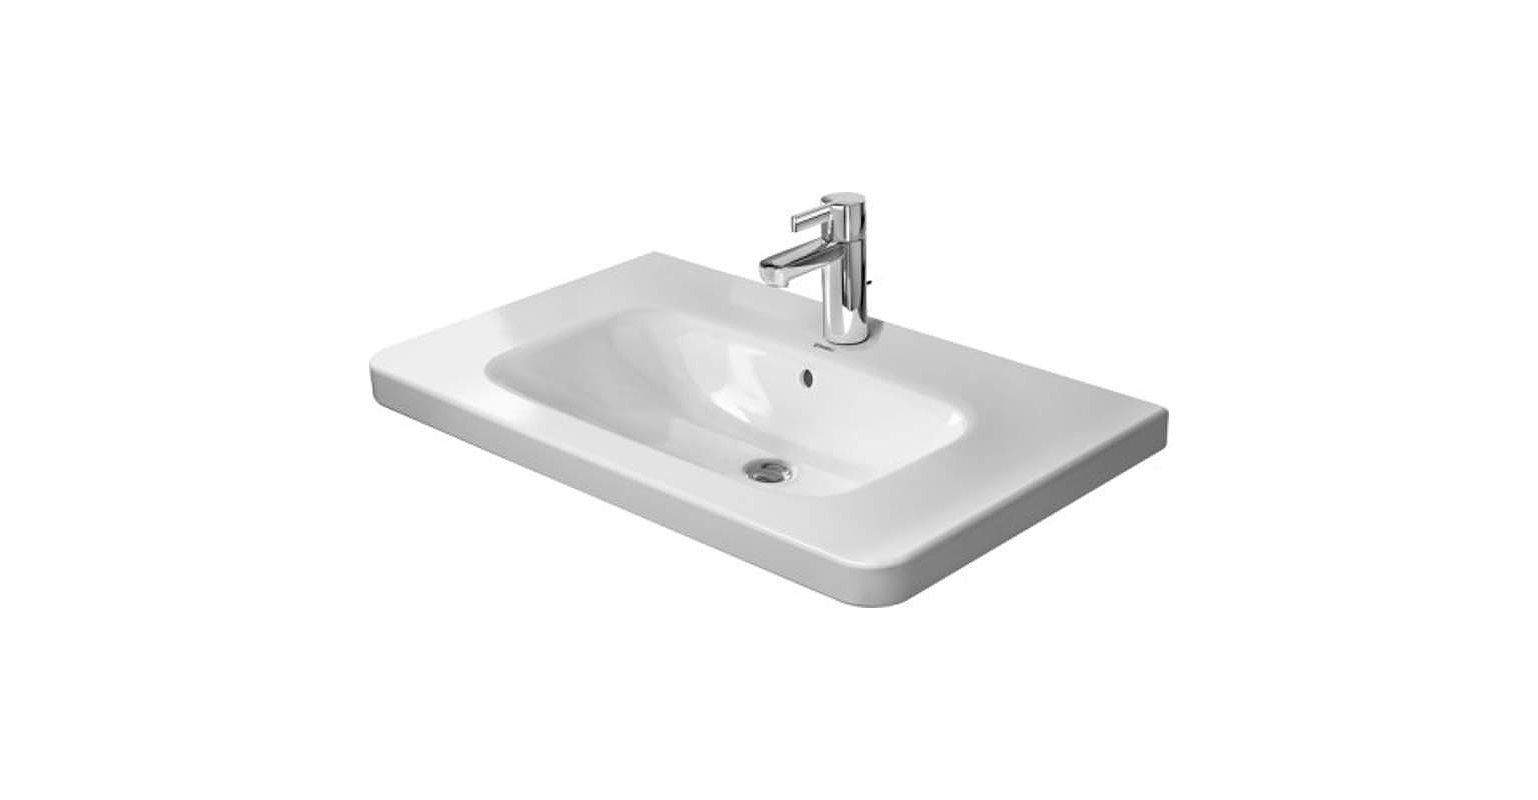 Duravit Bathroom Sink Faucetcom 2320800000 In White By Duravit